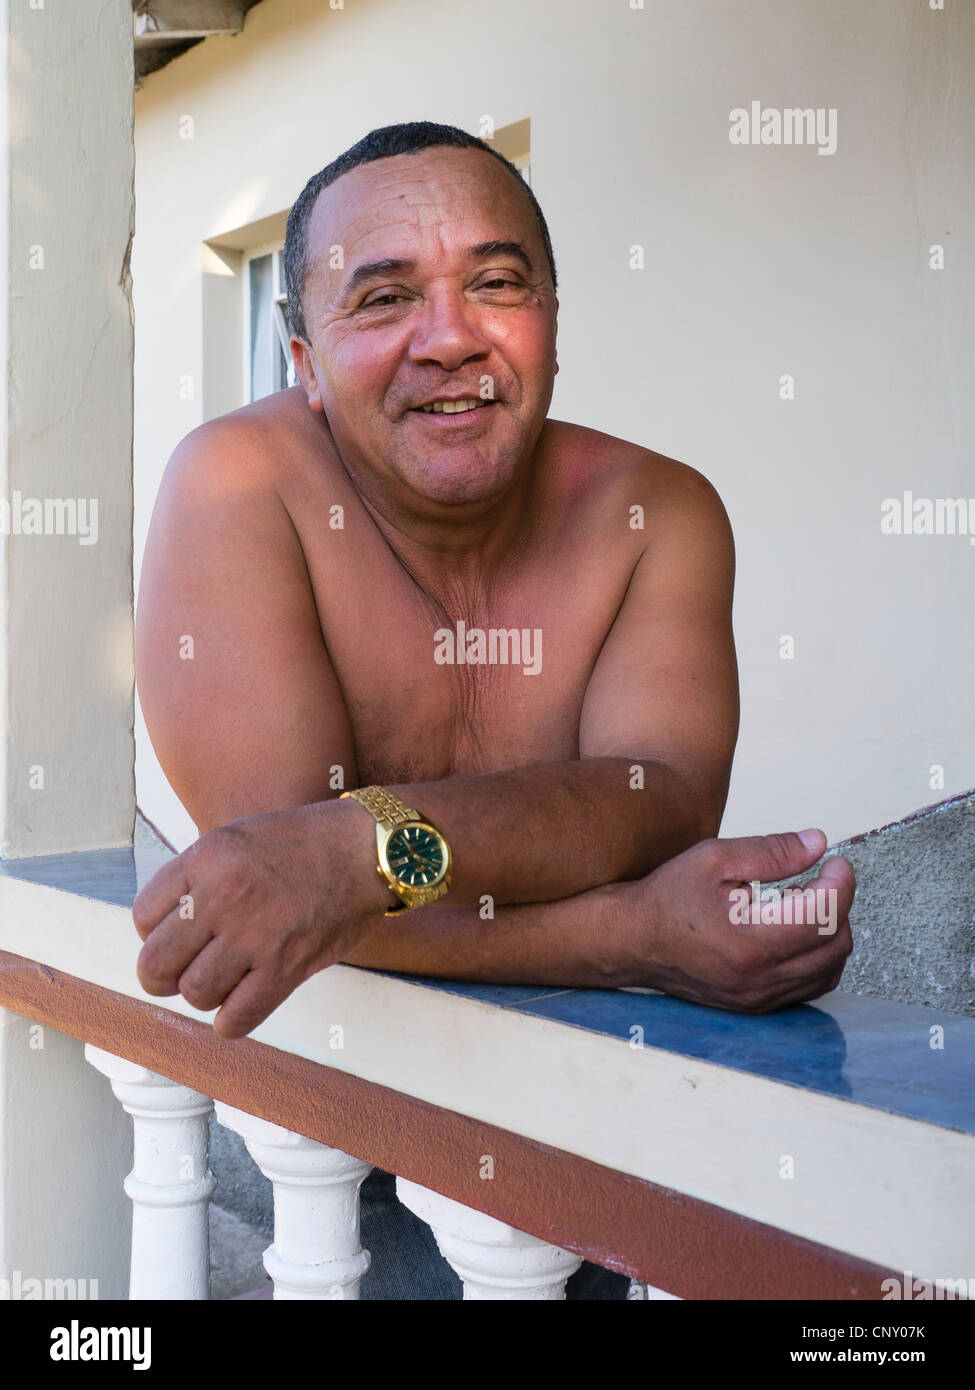 A shirtless 40-45 year old Hispanic Cuban male leans on a balustrade of his house and smiles while looking forward. - Stock Image